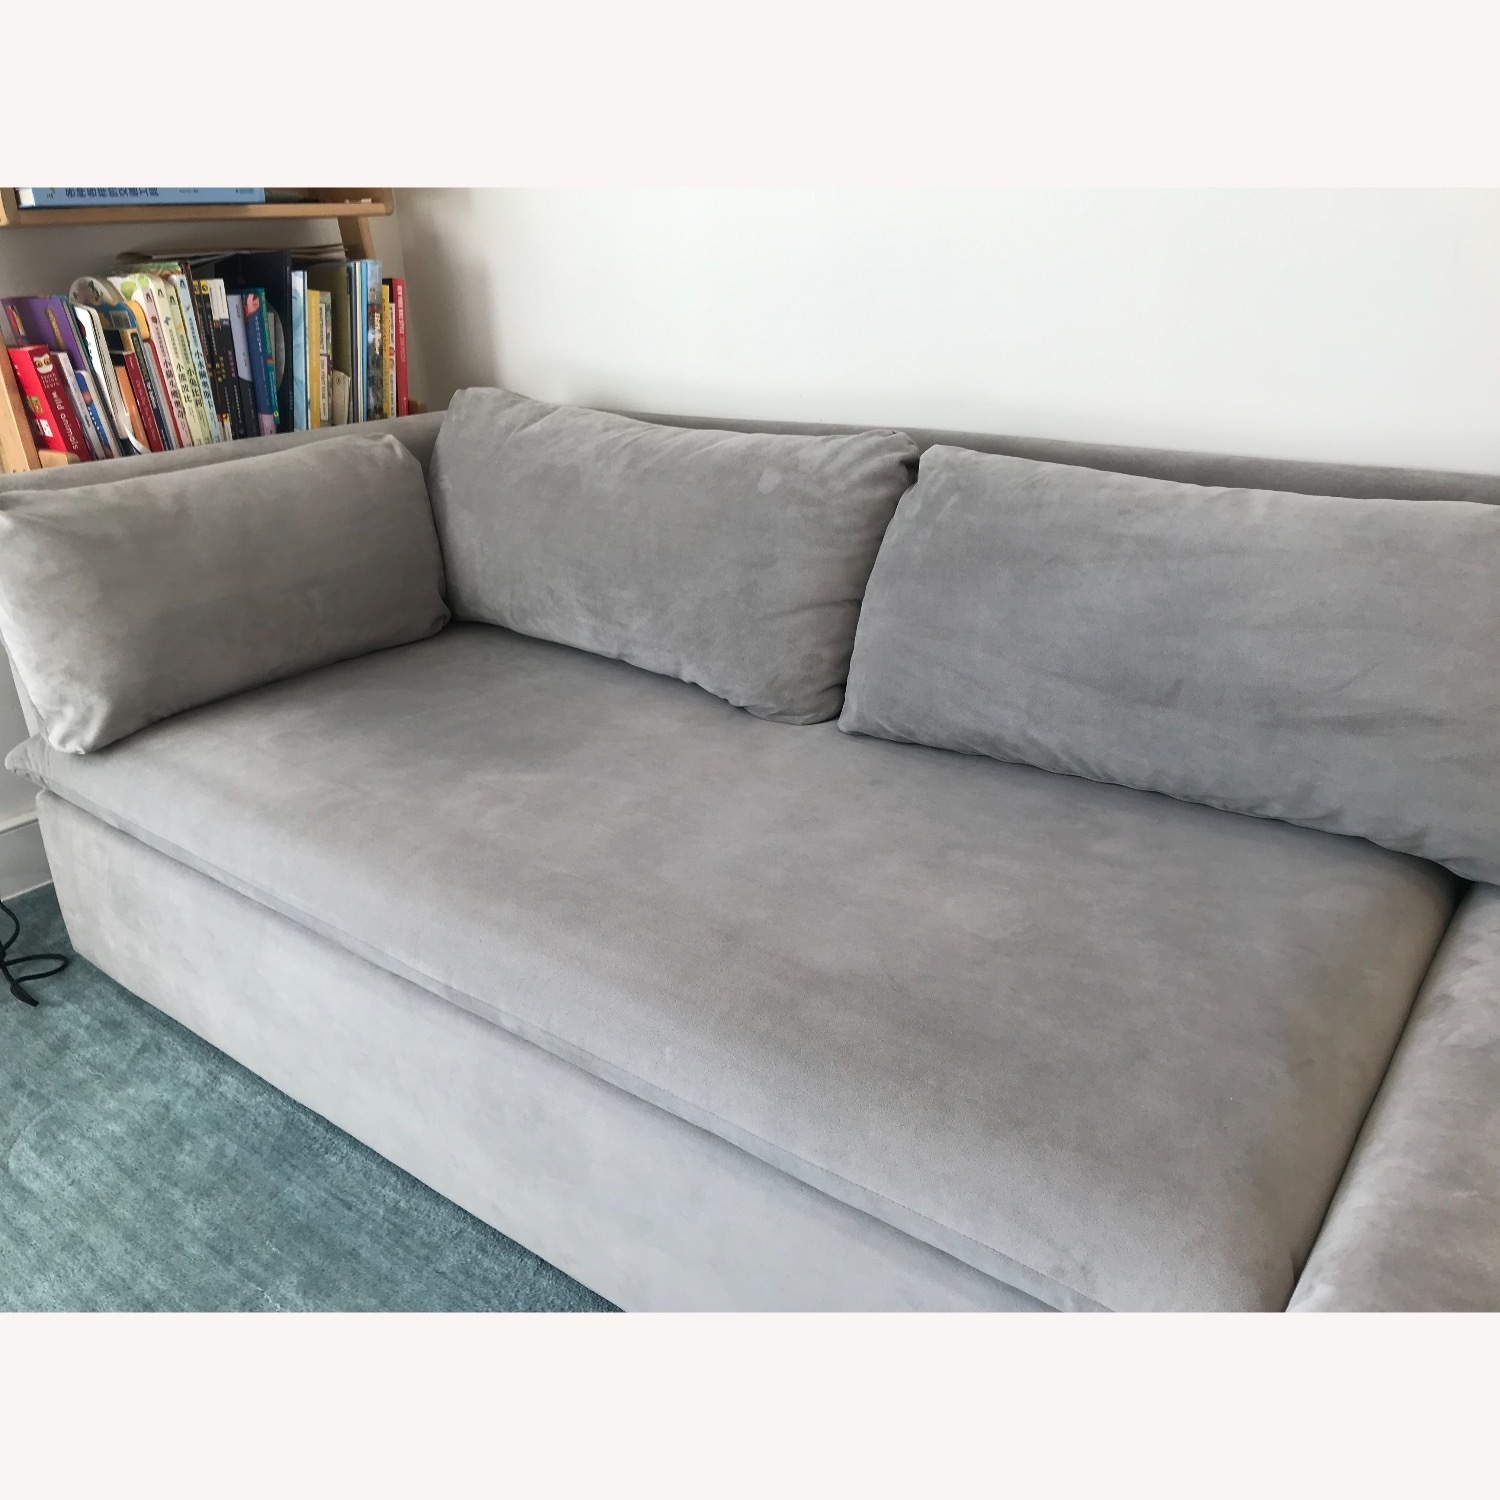 West Elm Shelter Sectional Sofa Dove Gray - image-3